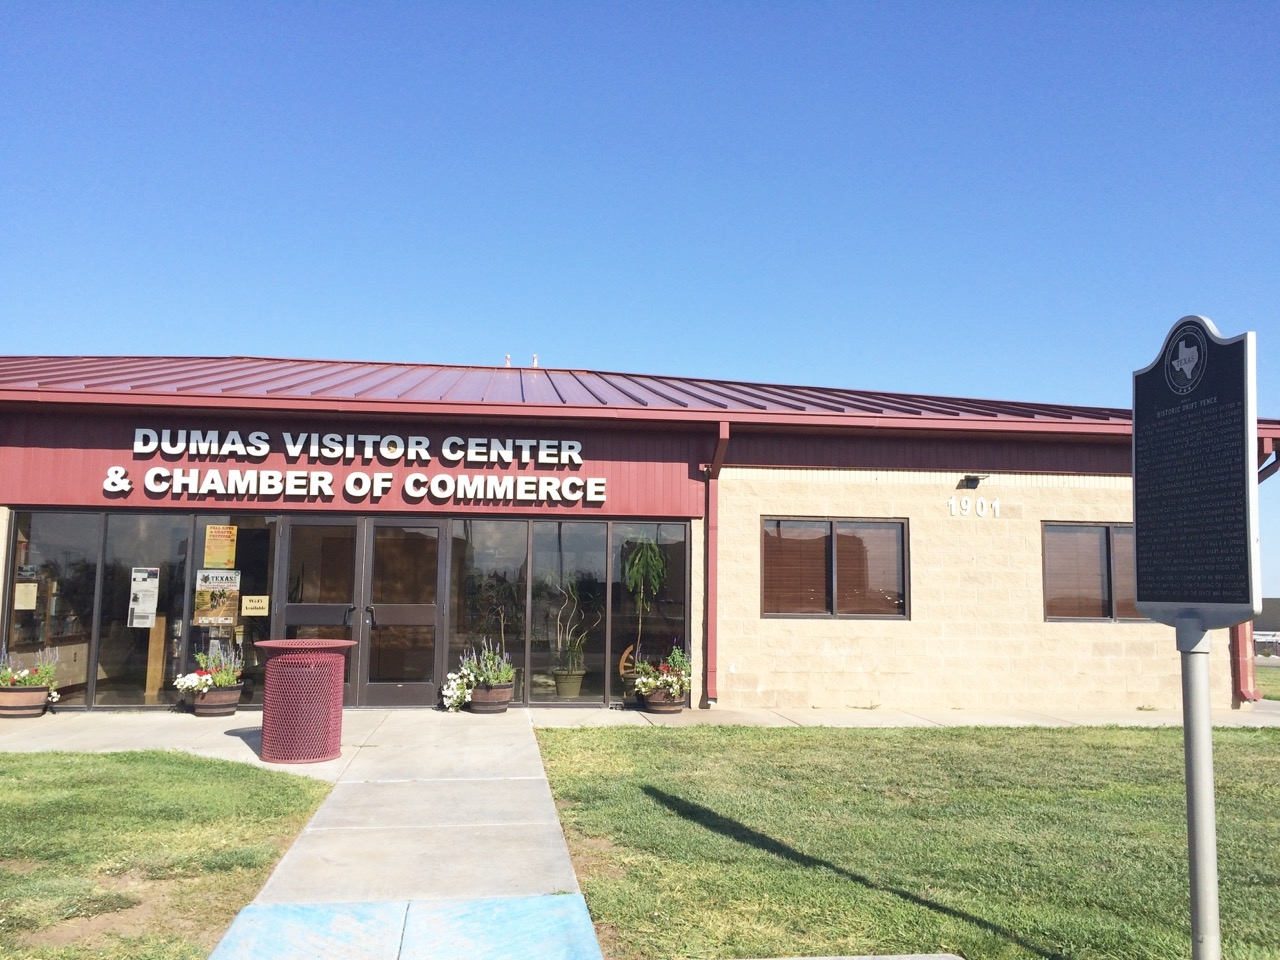 City of Dumas Visitors Center and Chamber of Commerce.